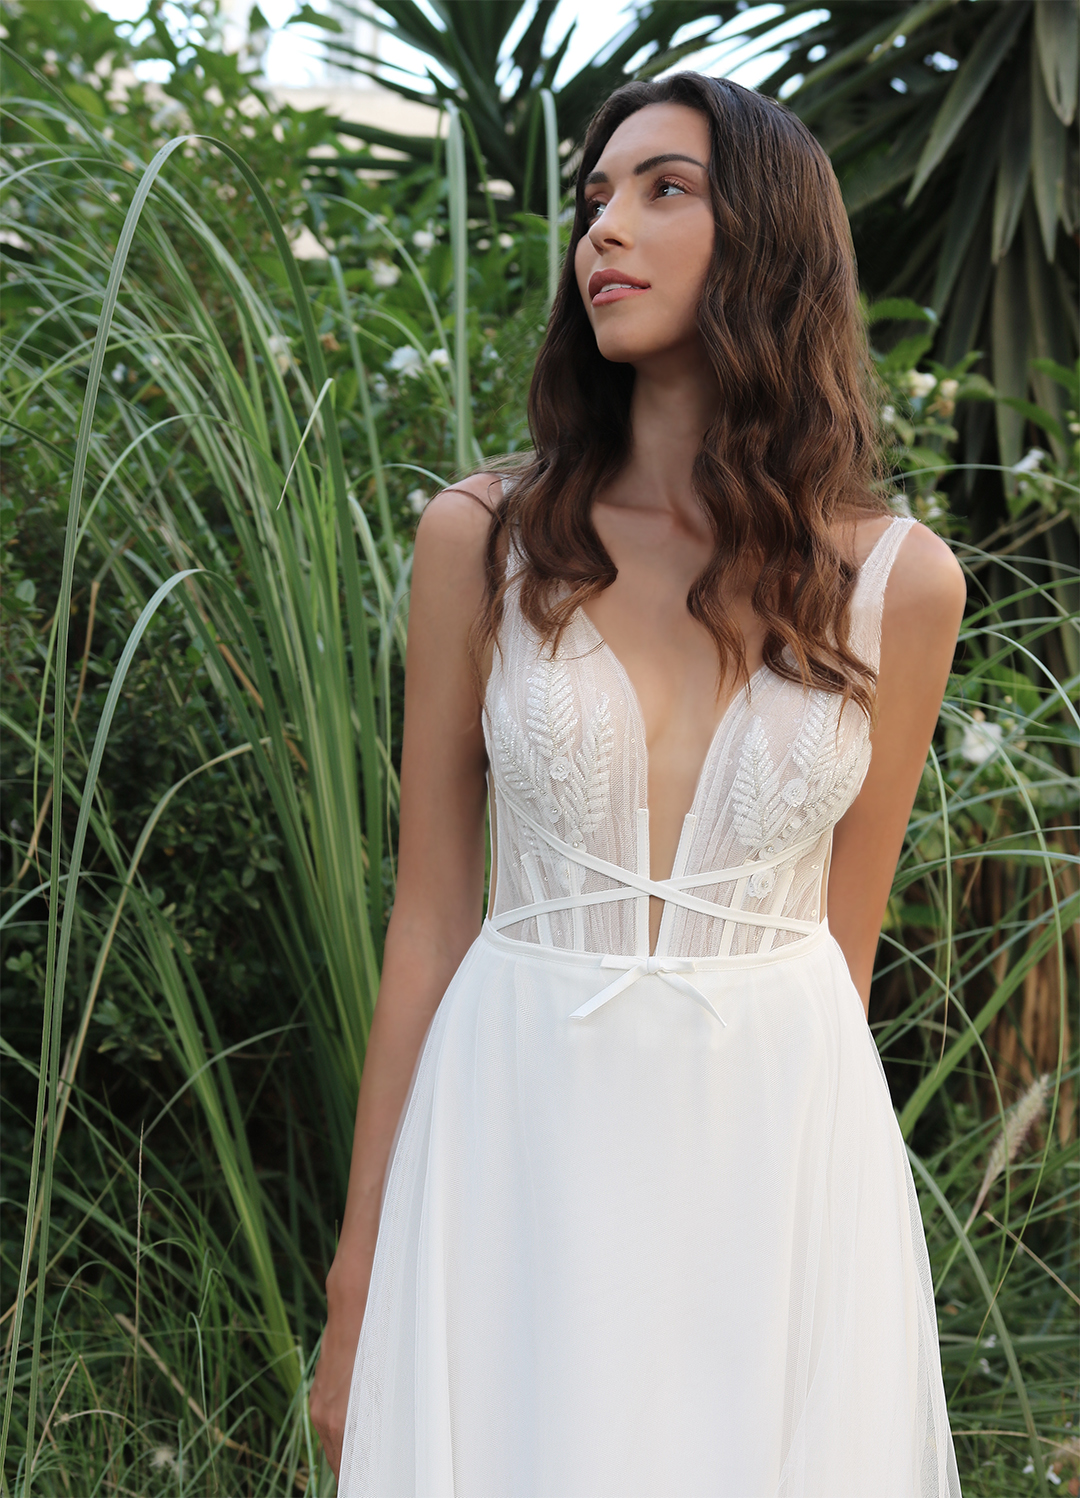 105-The MUSK Collection ELISH Bridal - 2